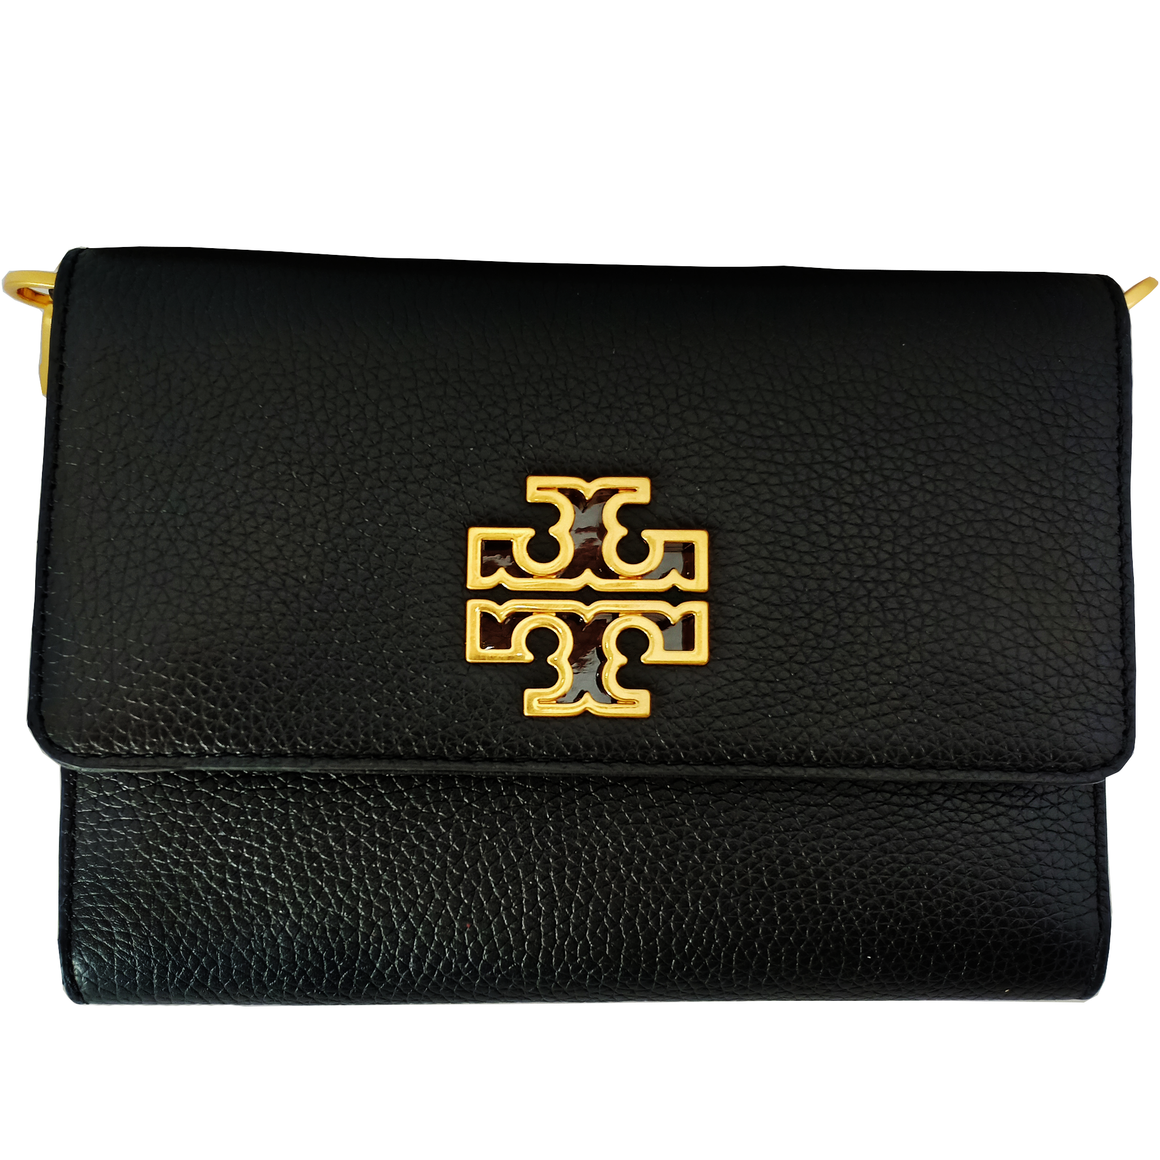 Tory Burch Britten Combo Crossbody Bag - Black